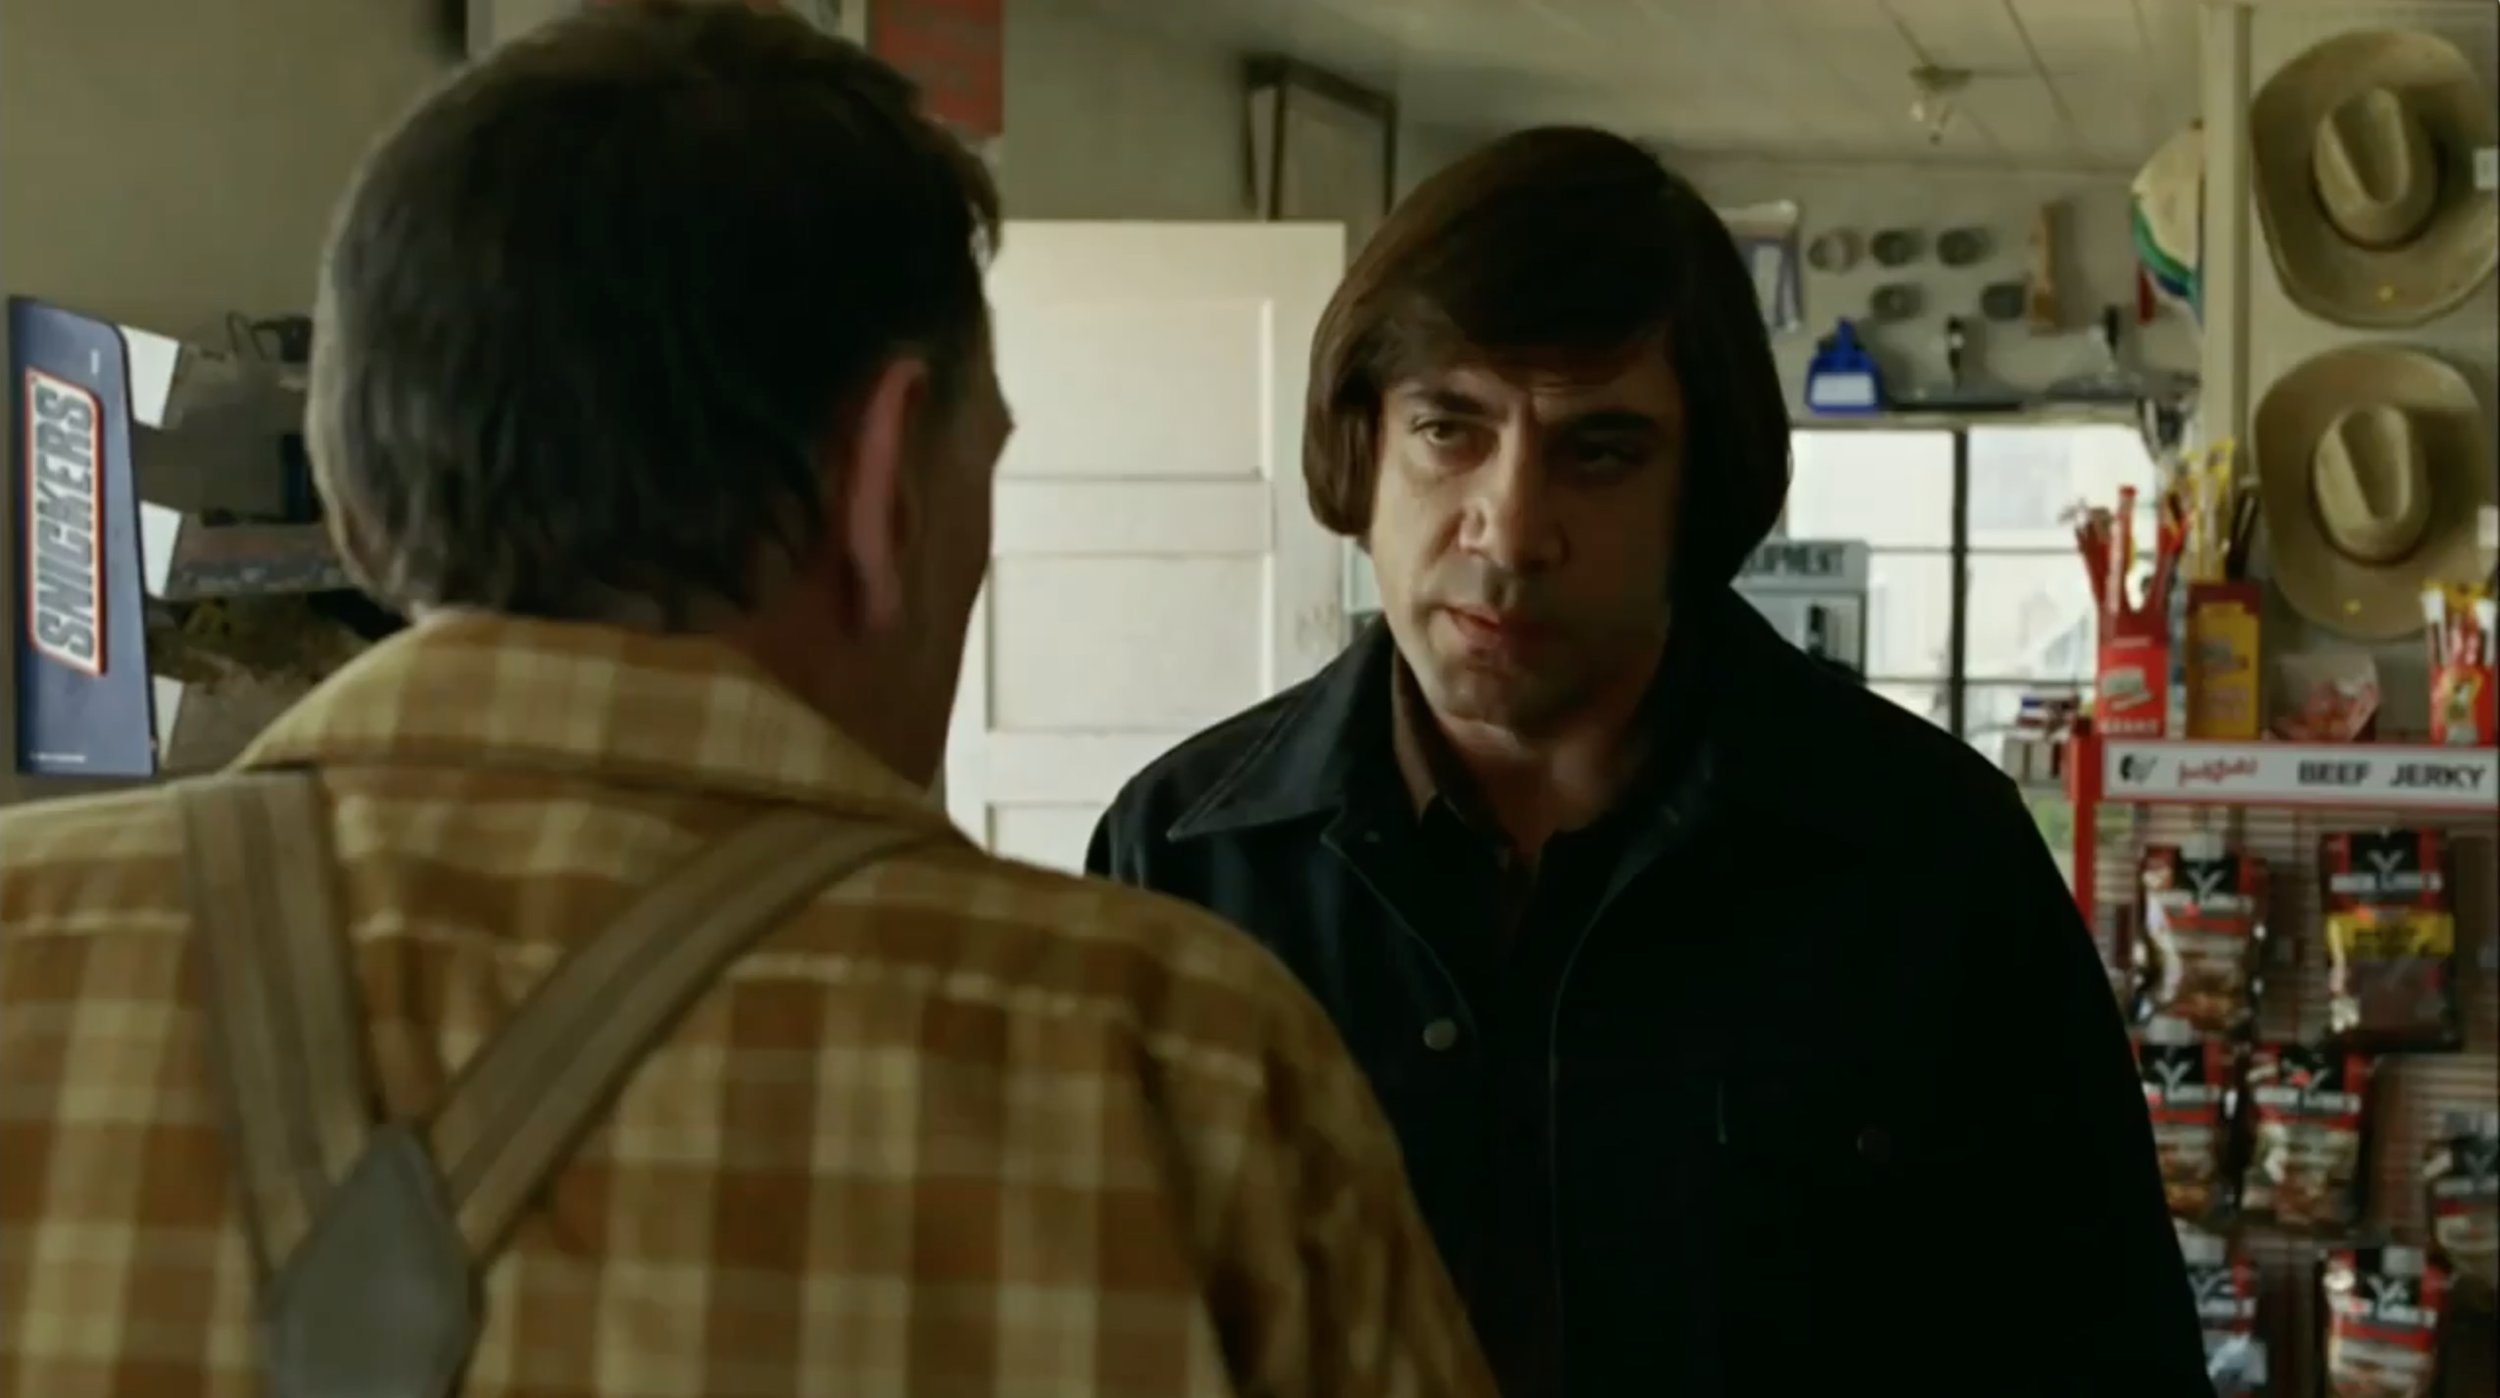 Bardem's hair alone is enough to make him out of place and threatening.